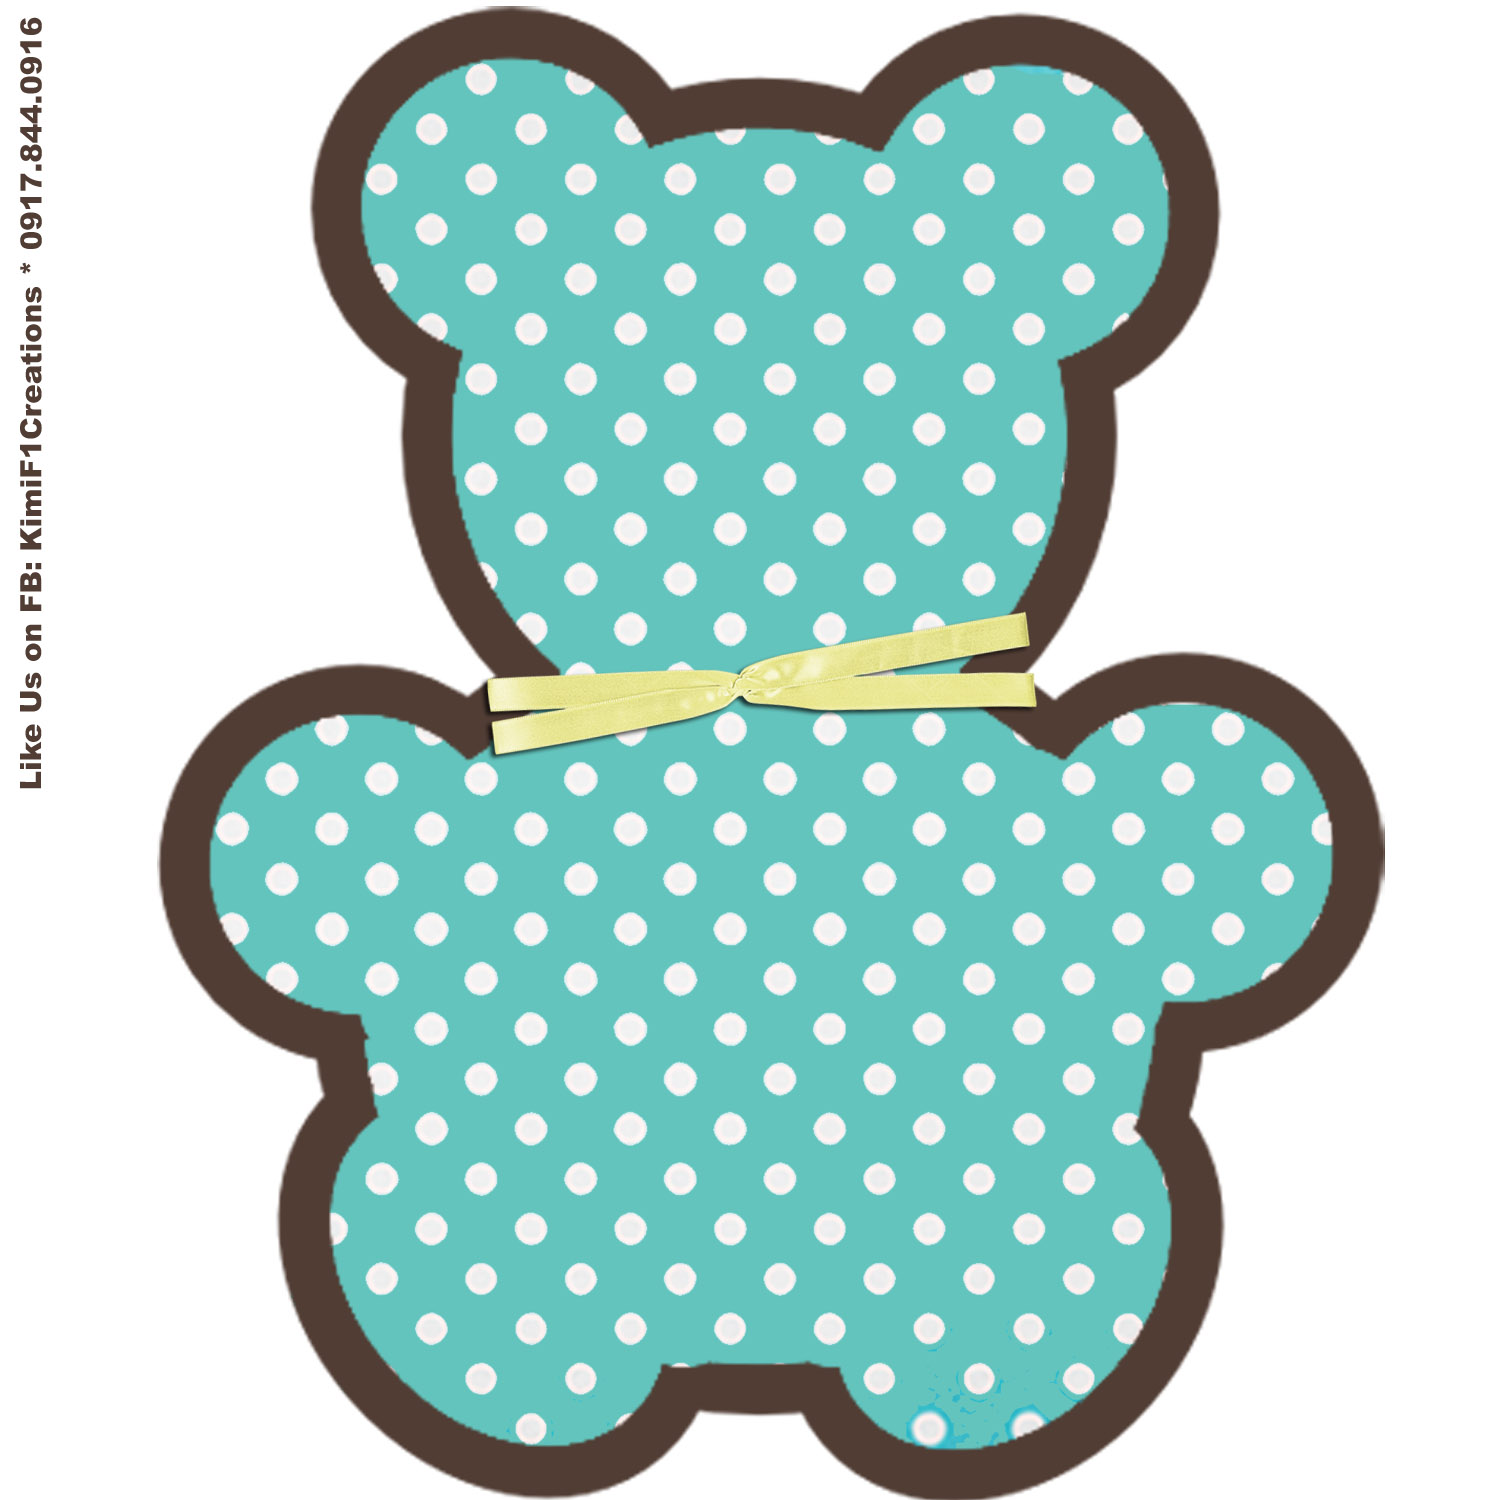 Ulla's Quilt World: Quilted teddy bears, pattern |Teddy Bear Template